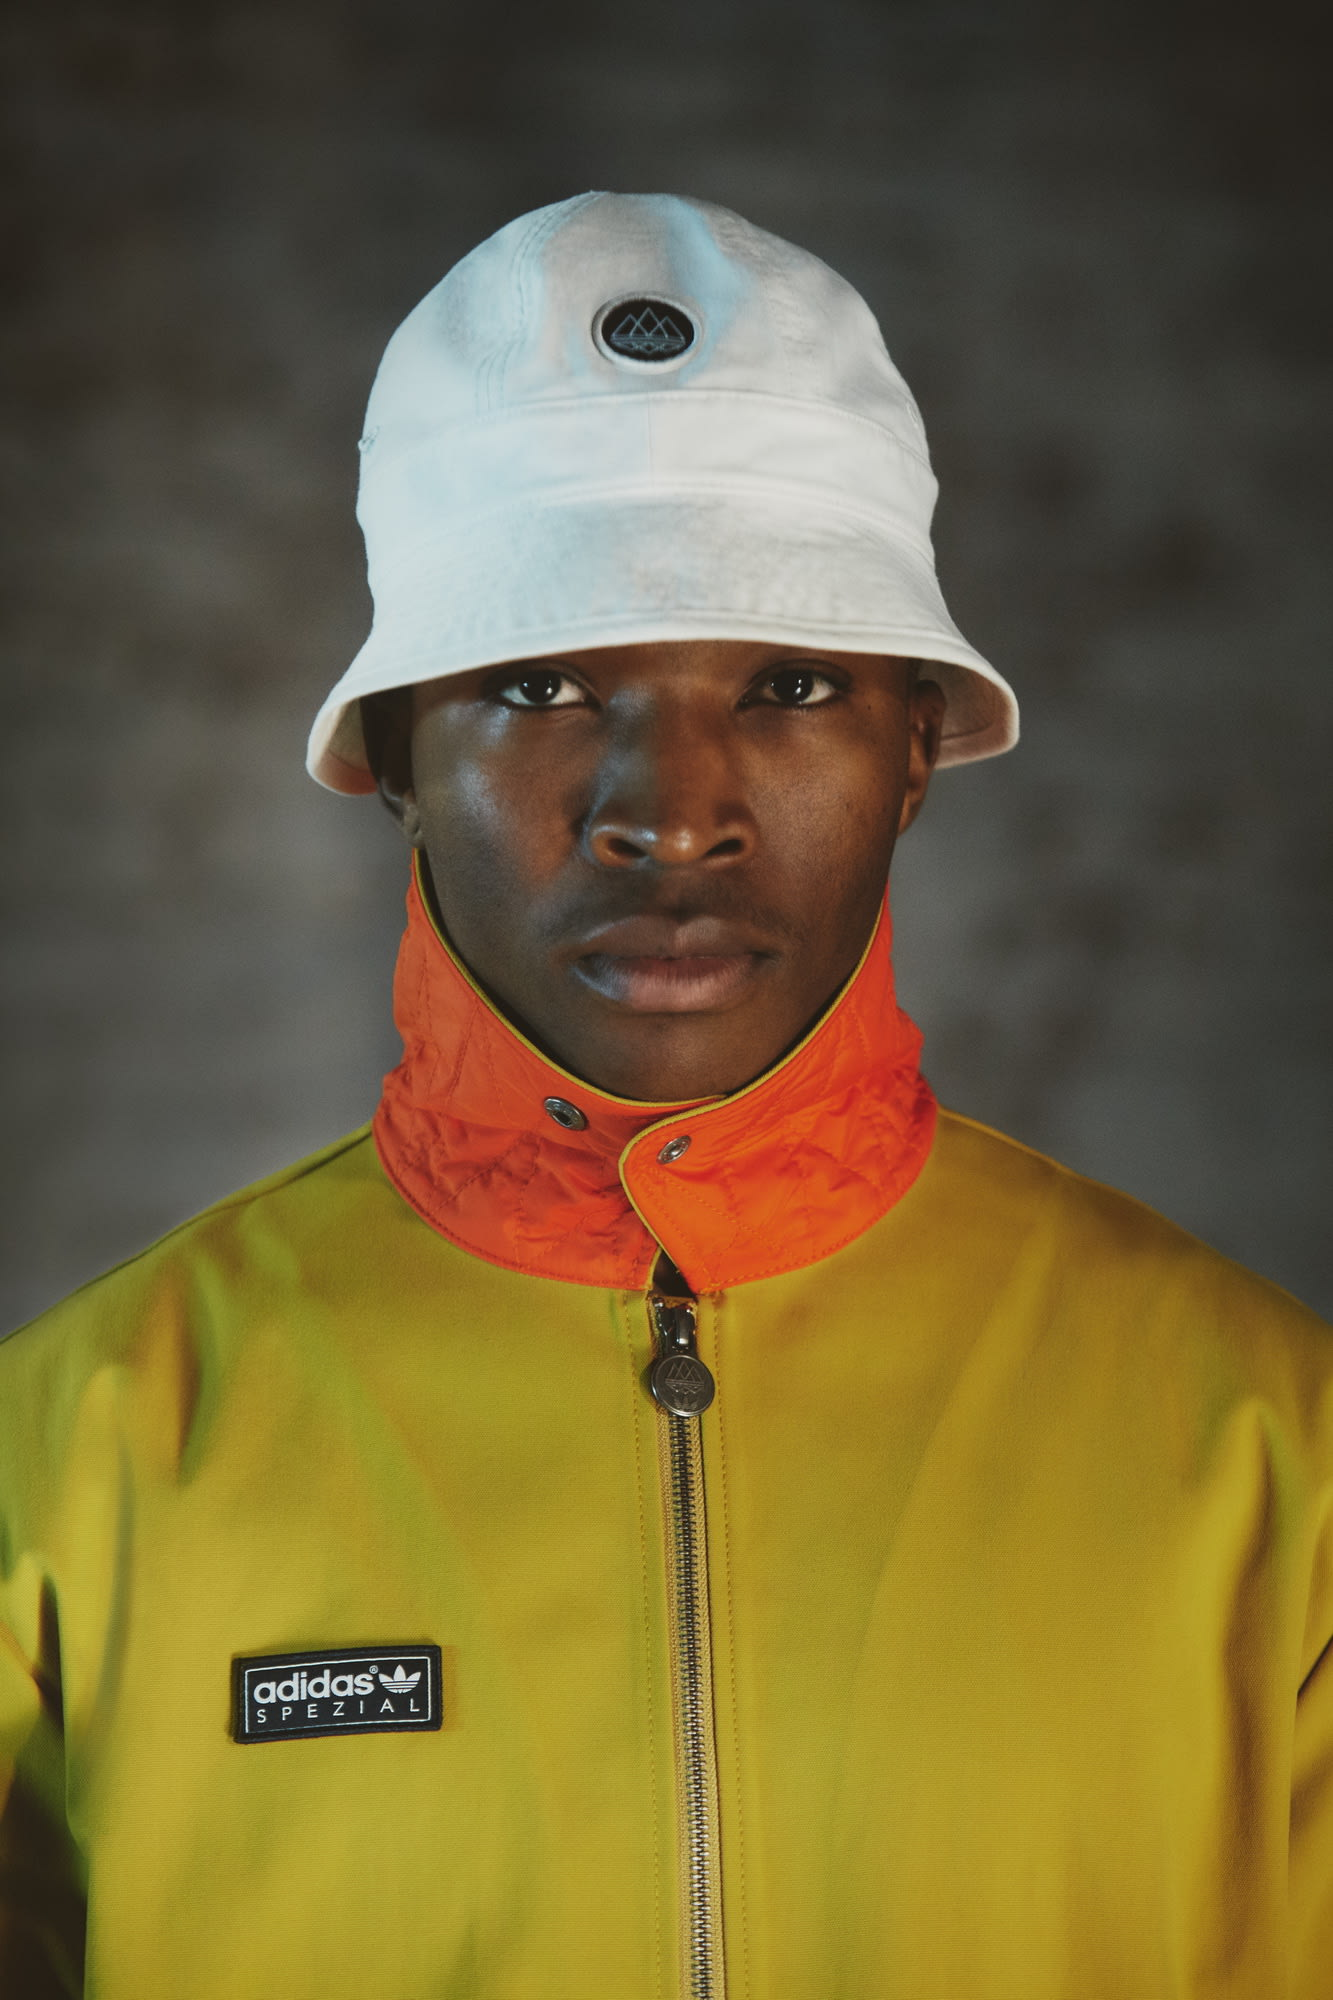 adidas SPEZIAL SS20 look book